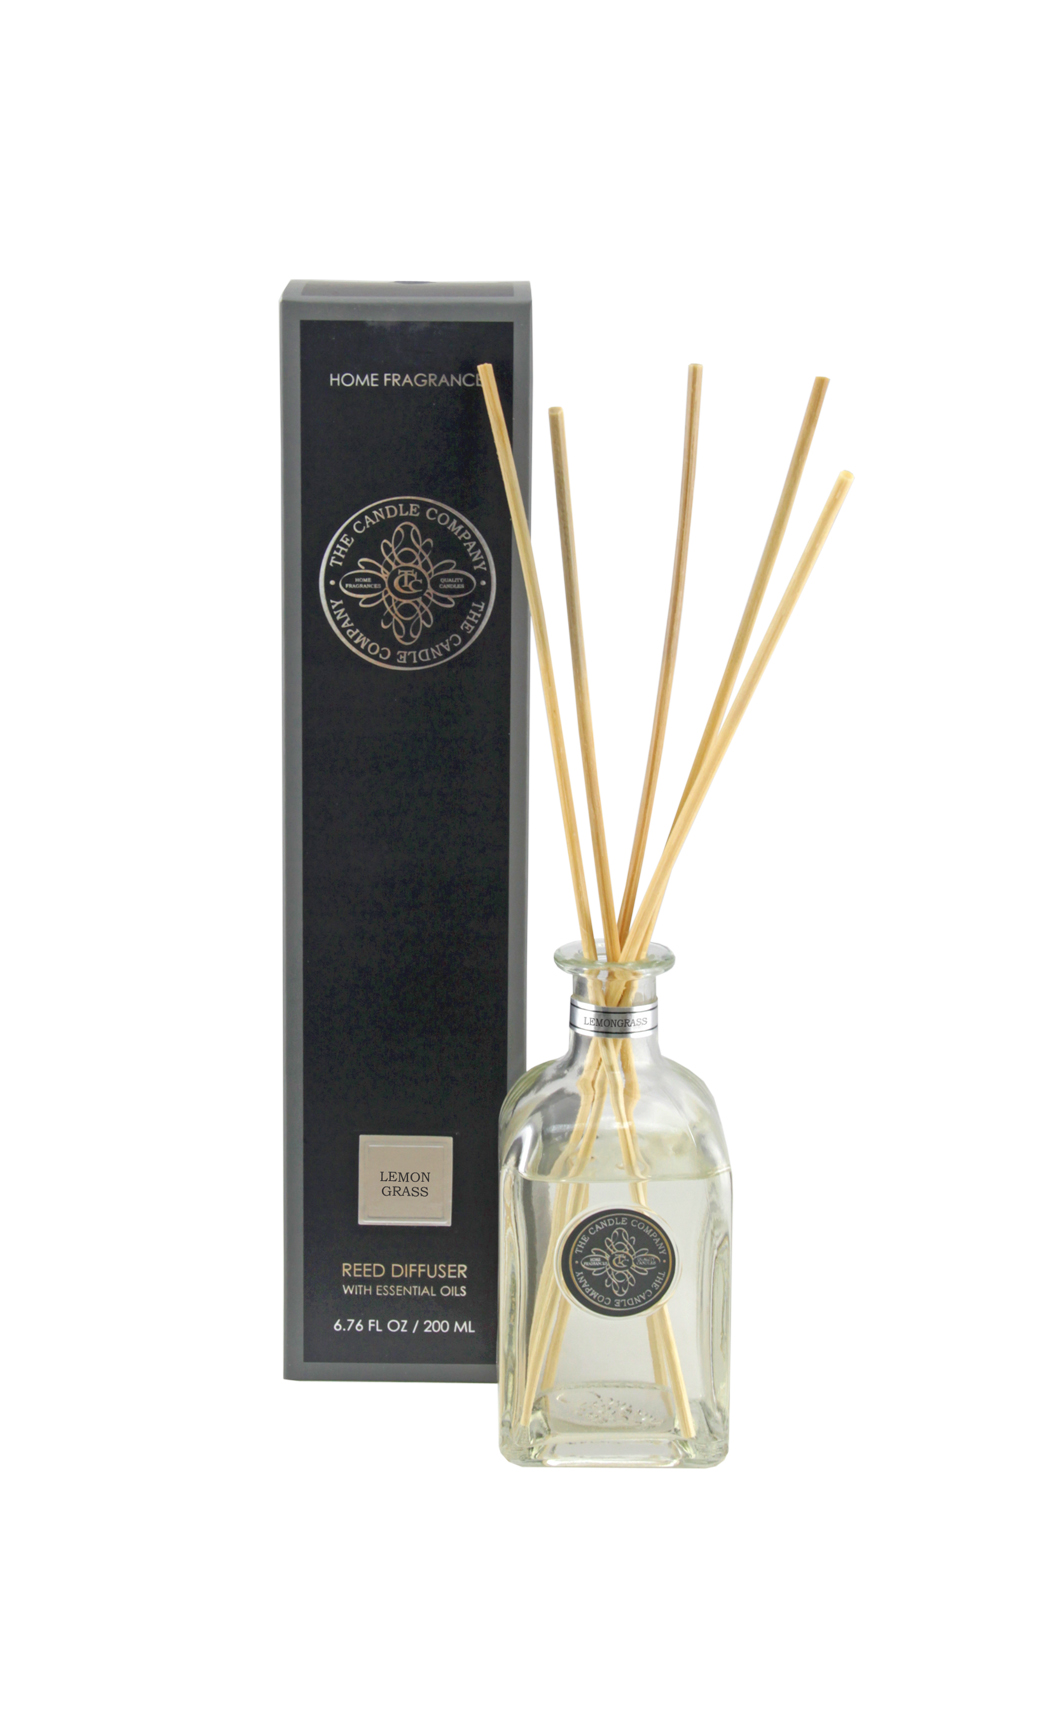 Scented Reed Diffuser Sticks and Lemongress Fragrance Oil - Aromatic Diffusers by The Candle Co. - Shop Online in India